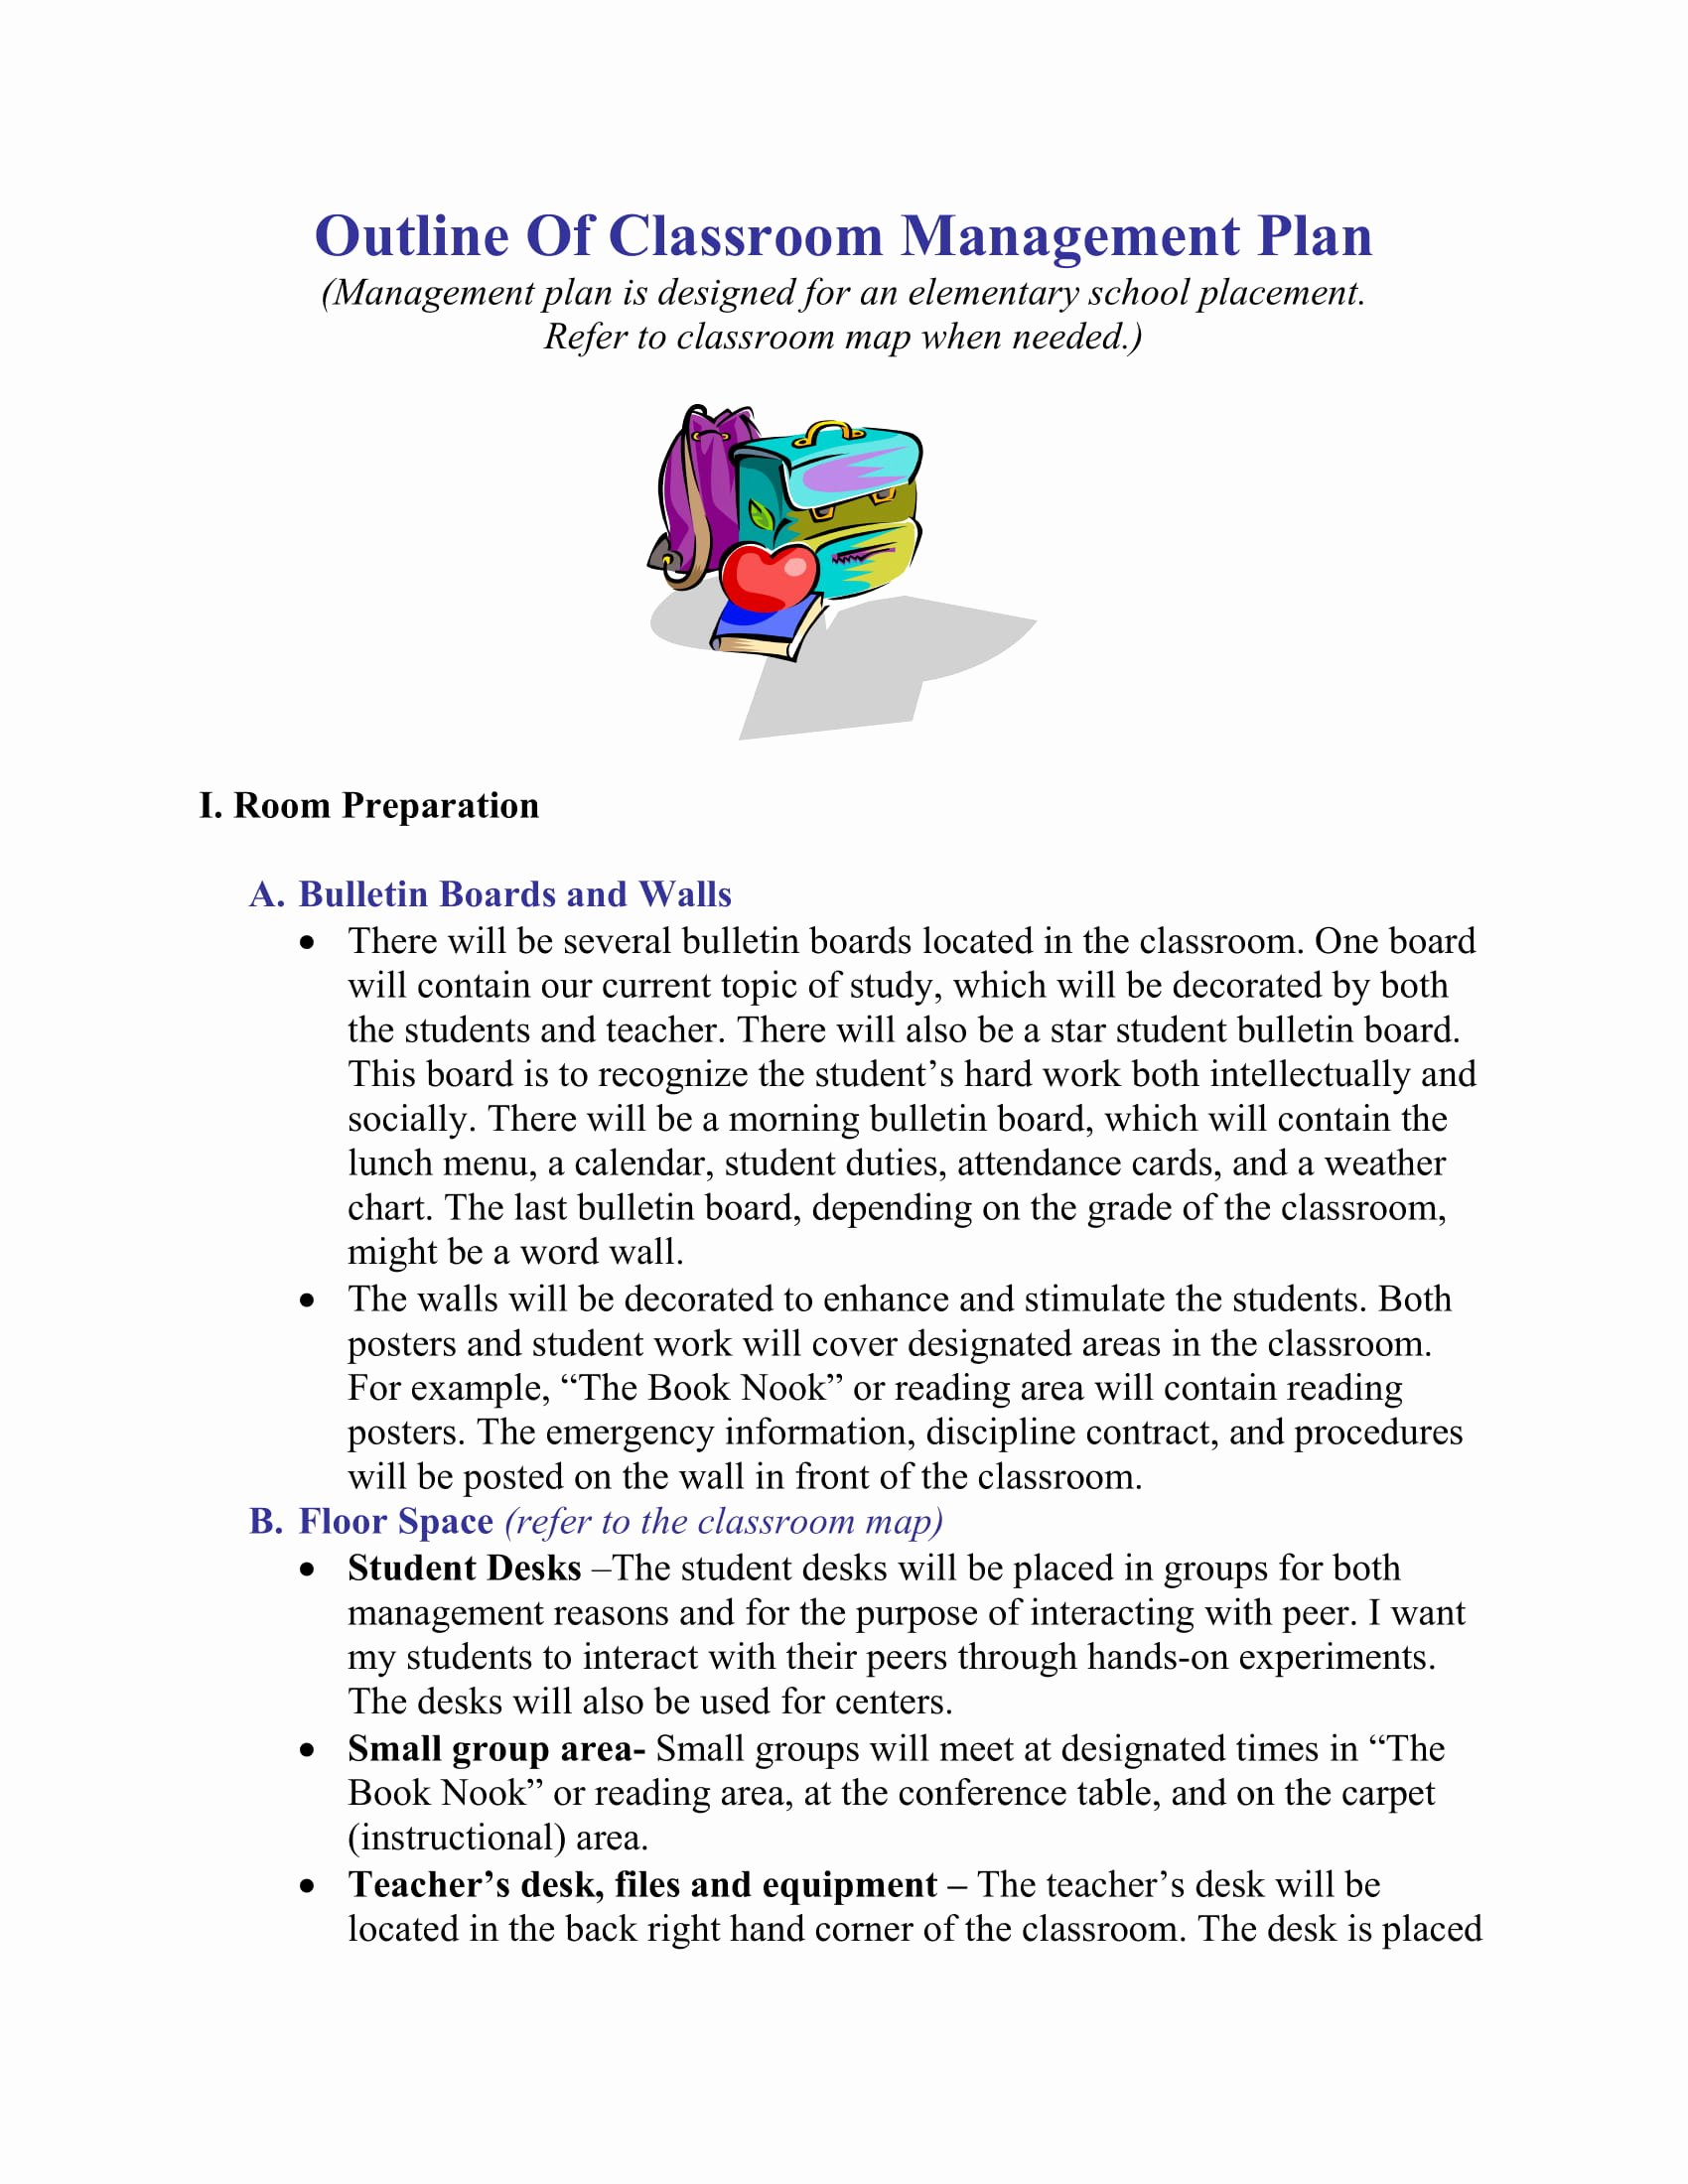 Classroom Management Plan Template Elementary Fresh Classroom Management Plan Template